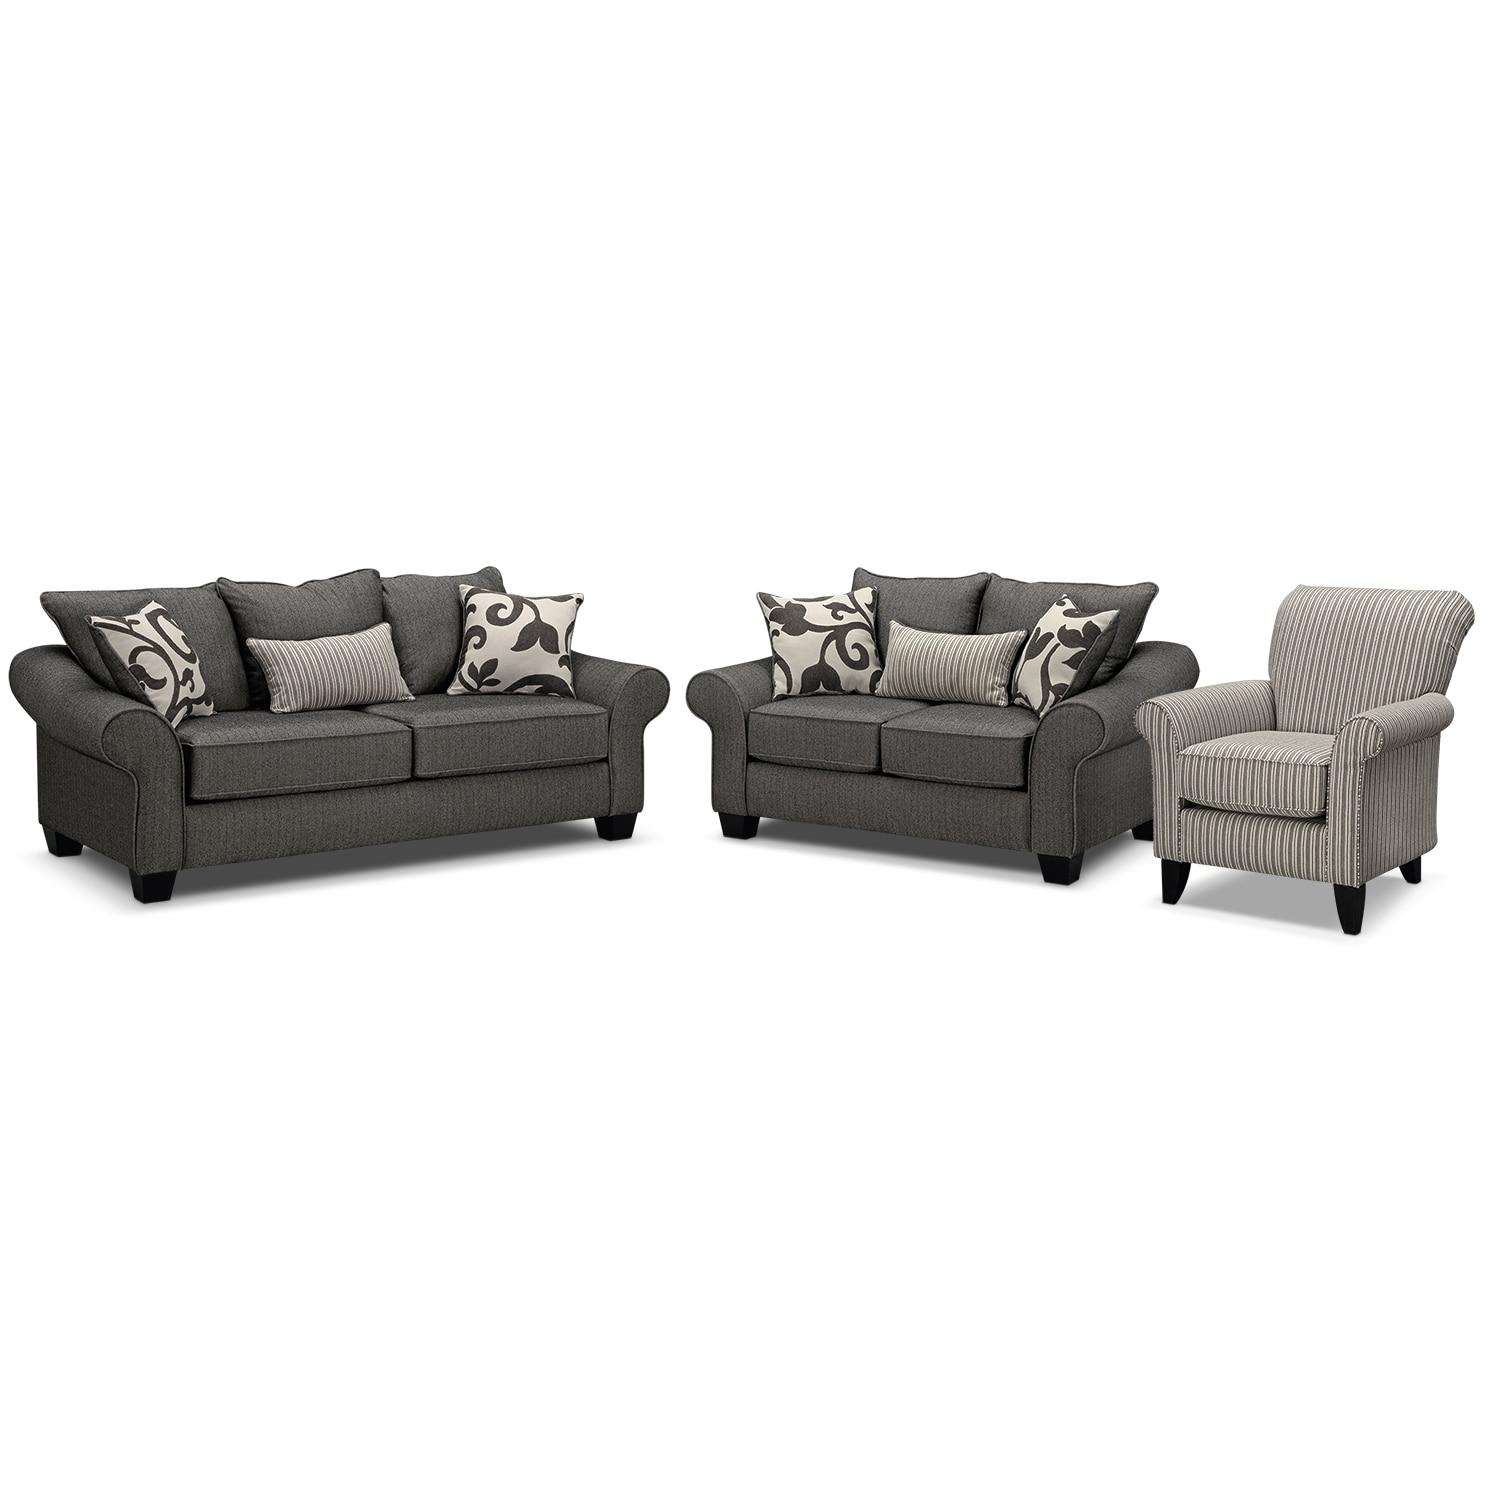 Colette Sofa And Accent Chair Set – Gray | Value City Furniture In Sofa And Accent Chair Set (View 13 of 20)